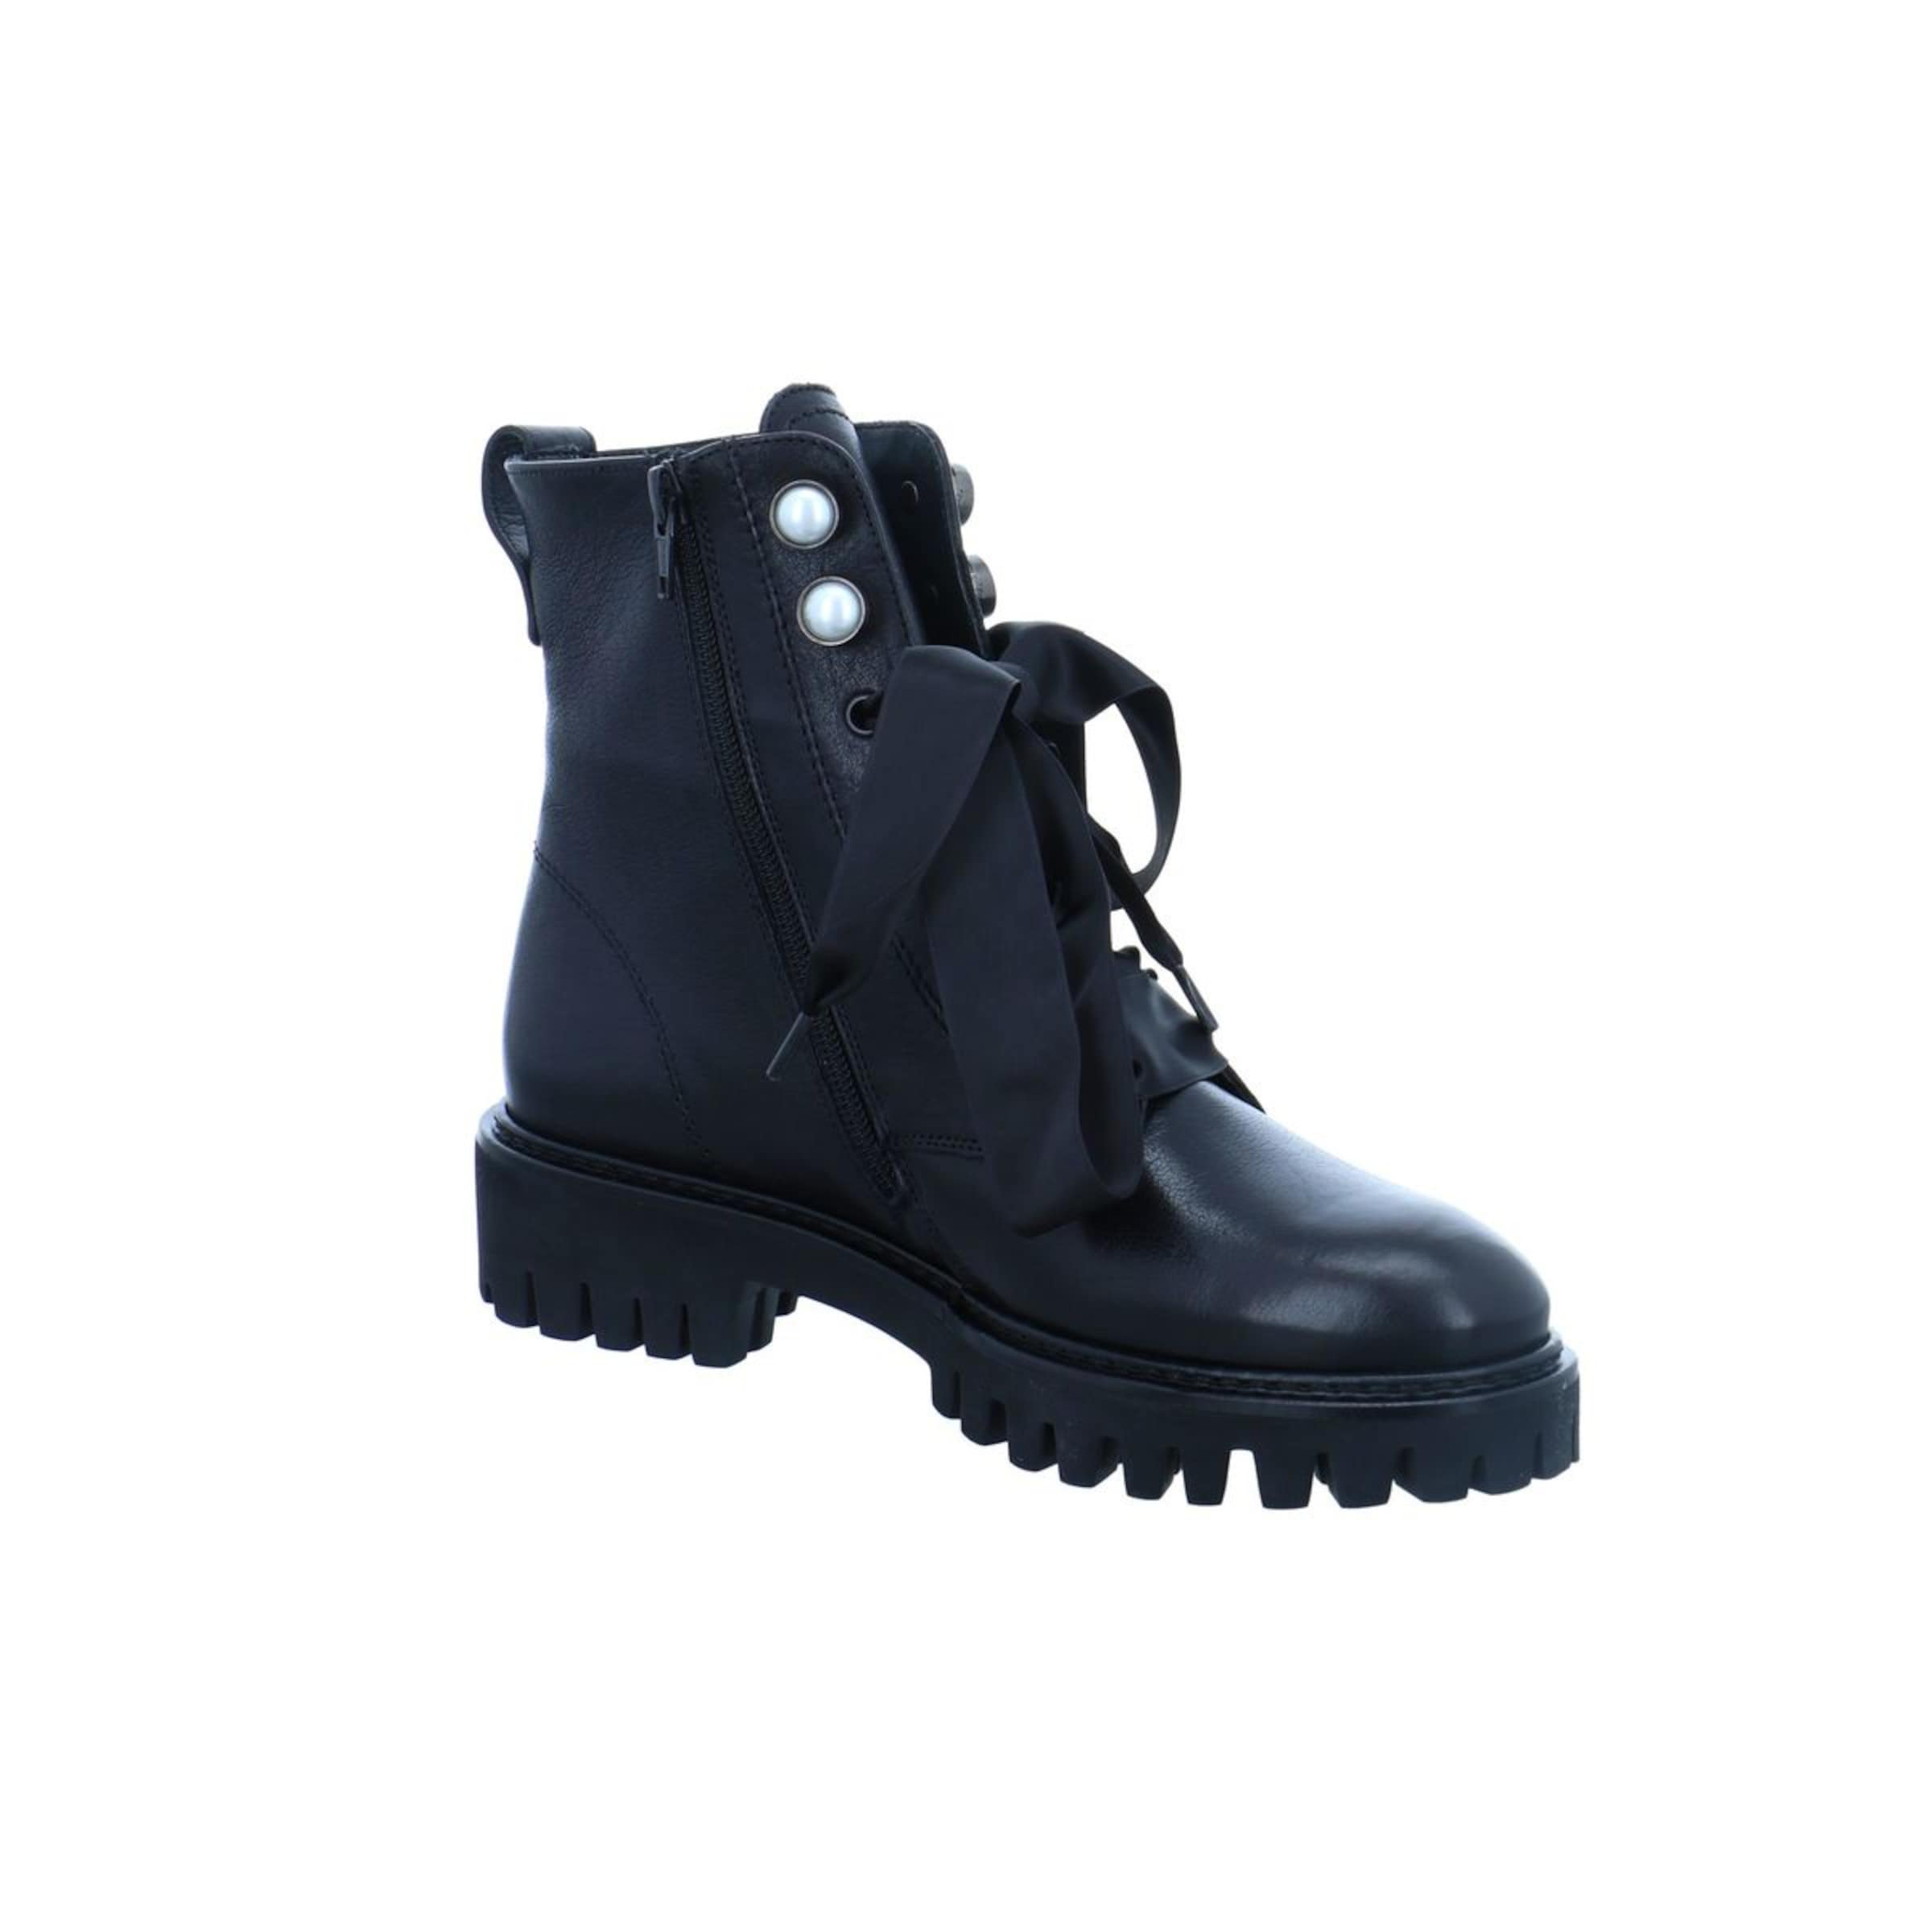 Green In Stiefel Paul Paul Schwarz J3Kc5lFuT1